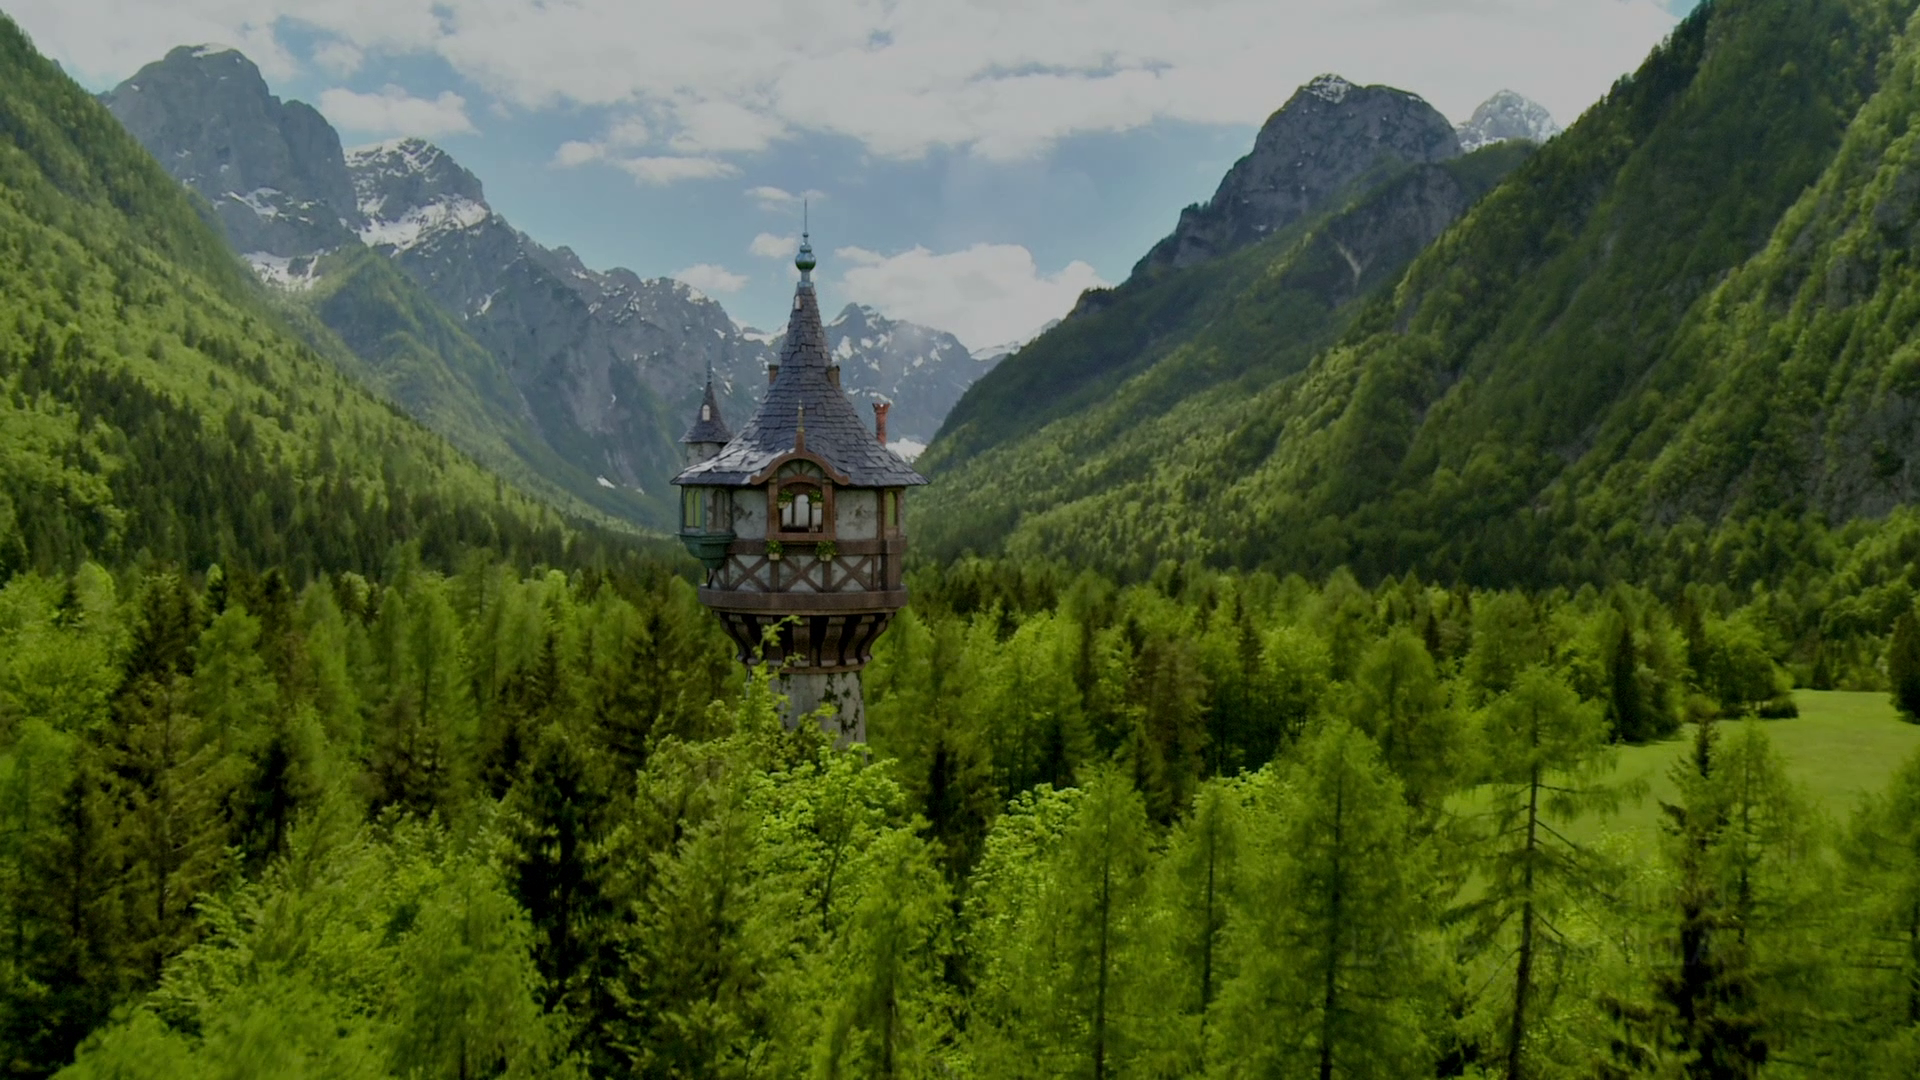 Gothel's Tower